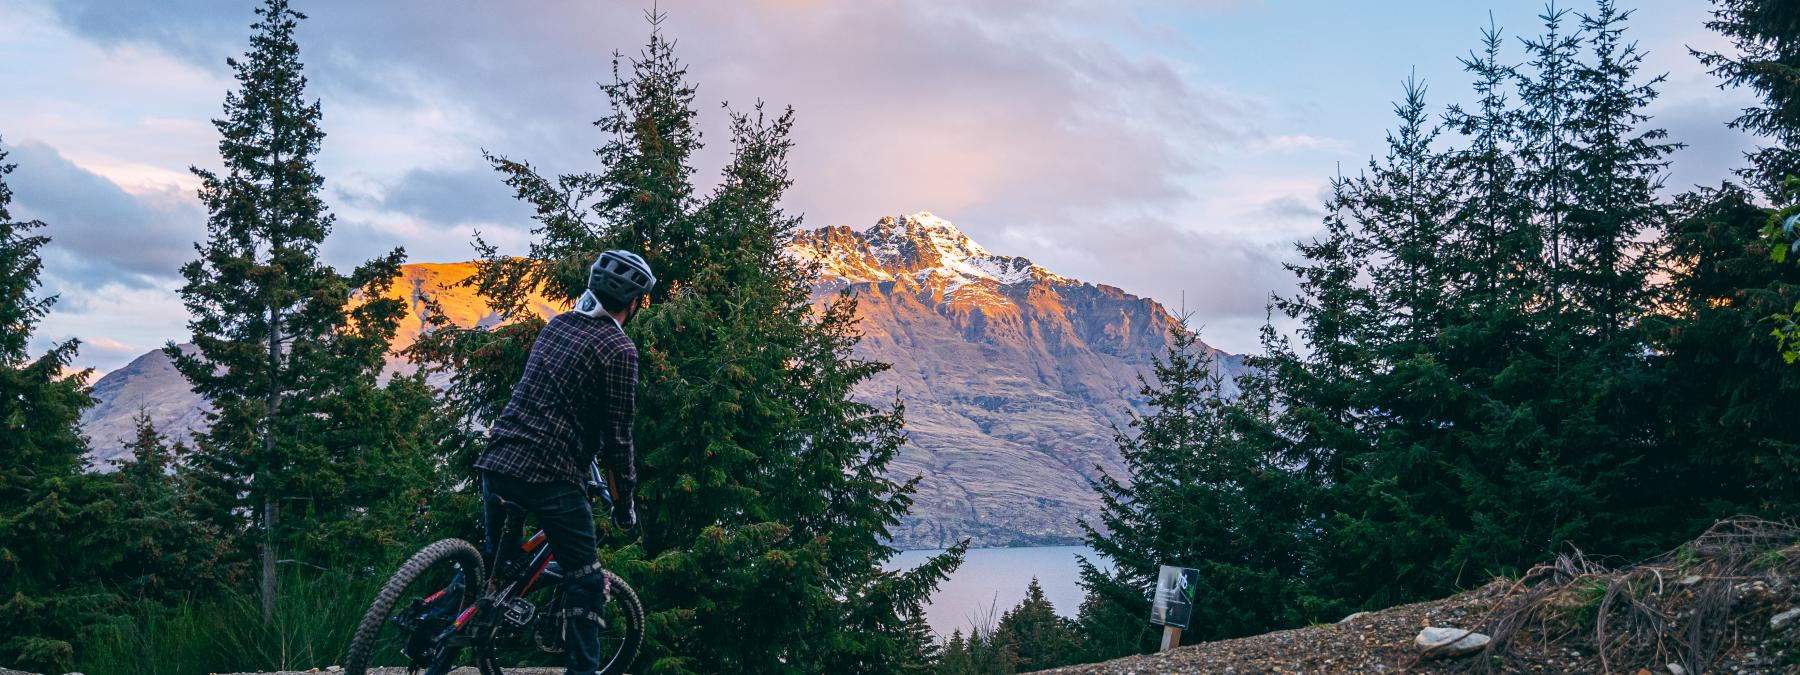 Queenstown Mountain Biking in Spring